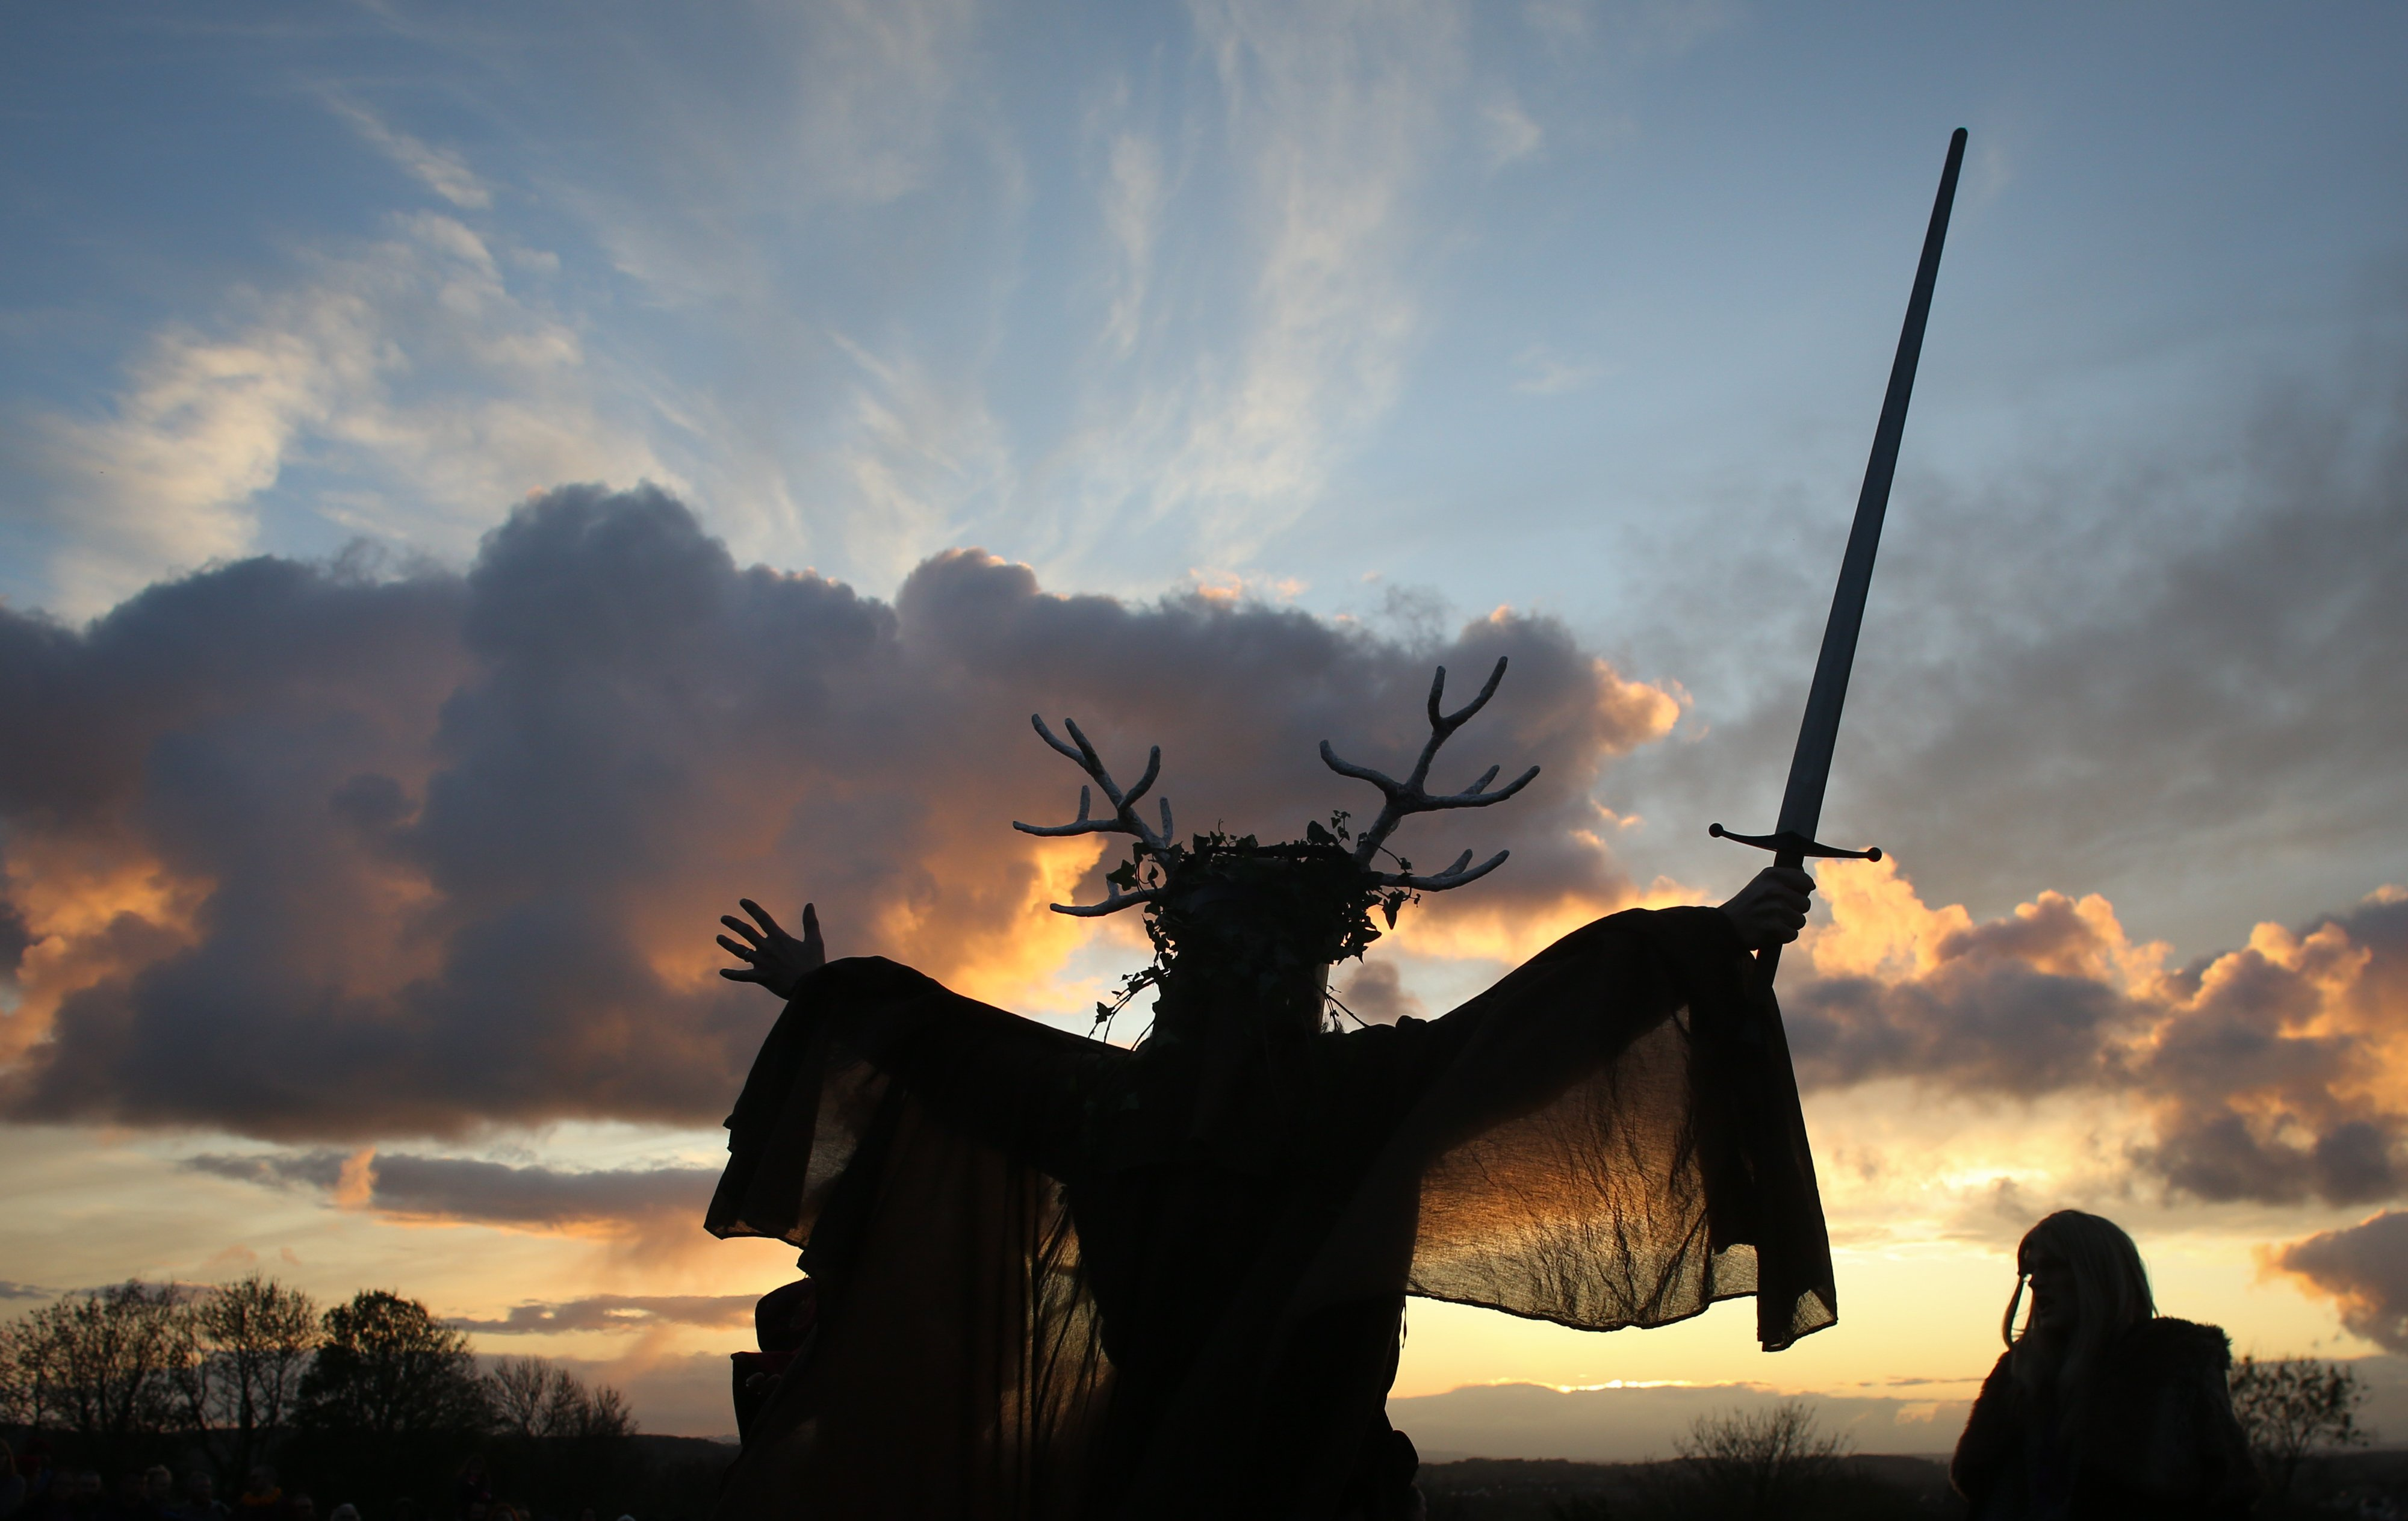 GLASTONBURY, ENGLAND - NOVEMBER 04: A man representing the Winter King holds a sword as he takes part in a sunset ceremony as they celebrate Samhain at the Glastonbury Dragons Samhain Wild Hunt 2017 in Glastonbury on November 4, 2017 in Somerset, England. (Photo by Matt Cardy/Getty Images)